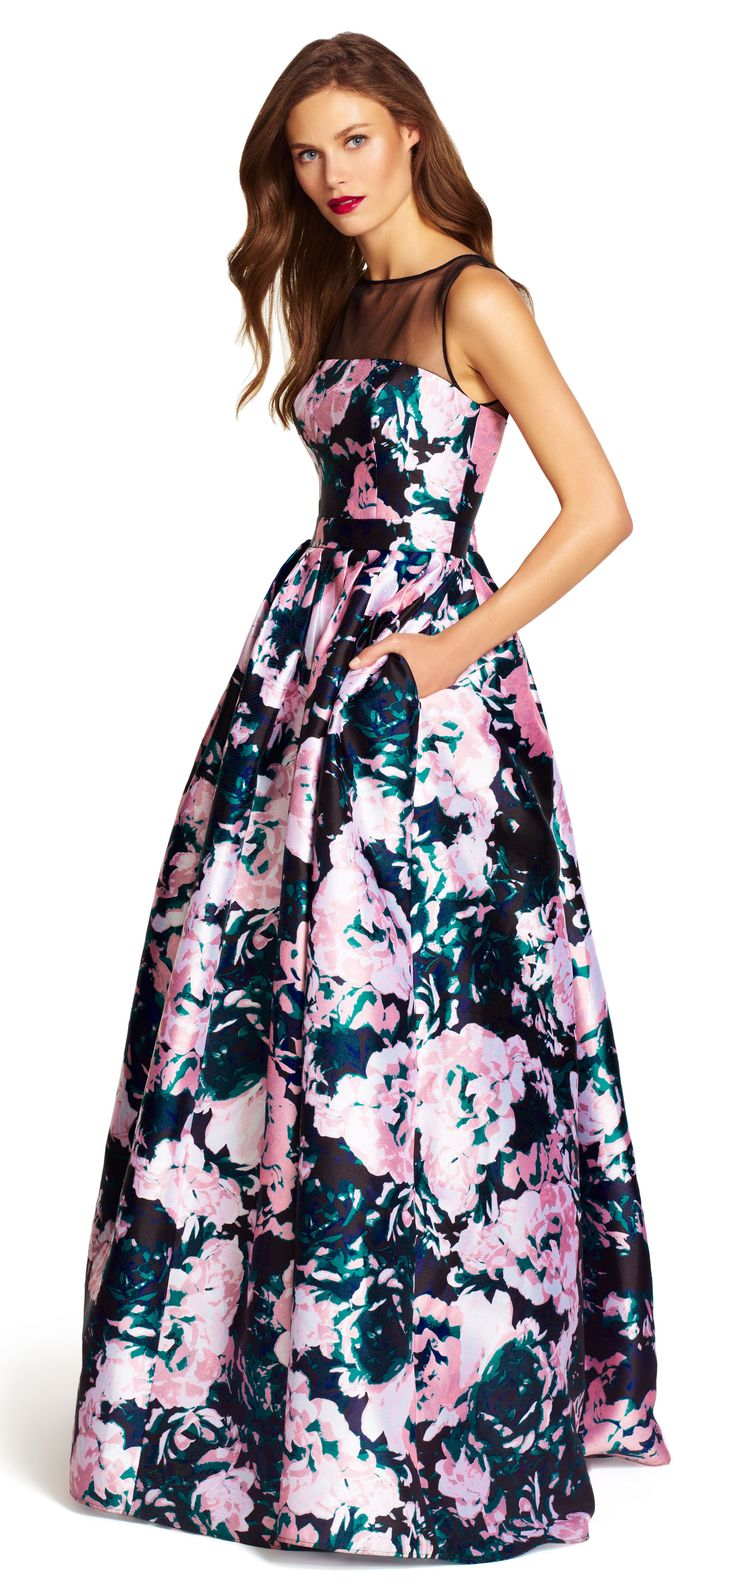 Beautiful vibrant blooms cascade across this stunning ball gown, featuring an illusion neck and pockets at both sides. Jaglady